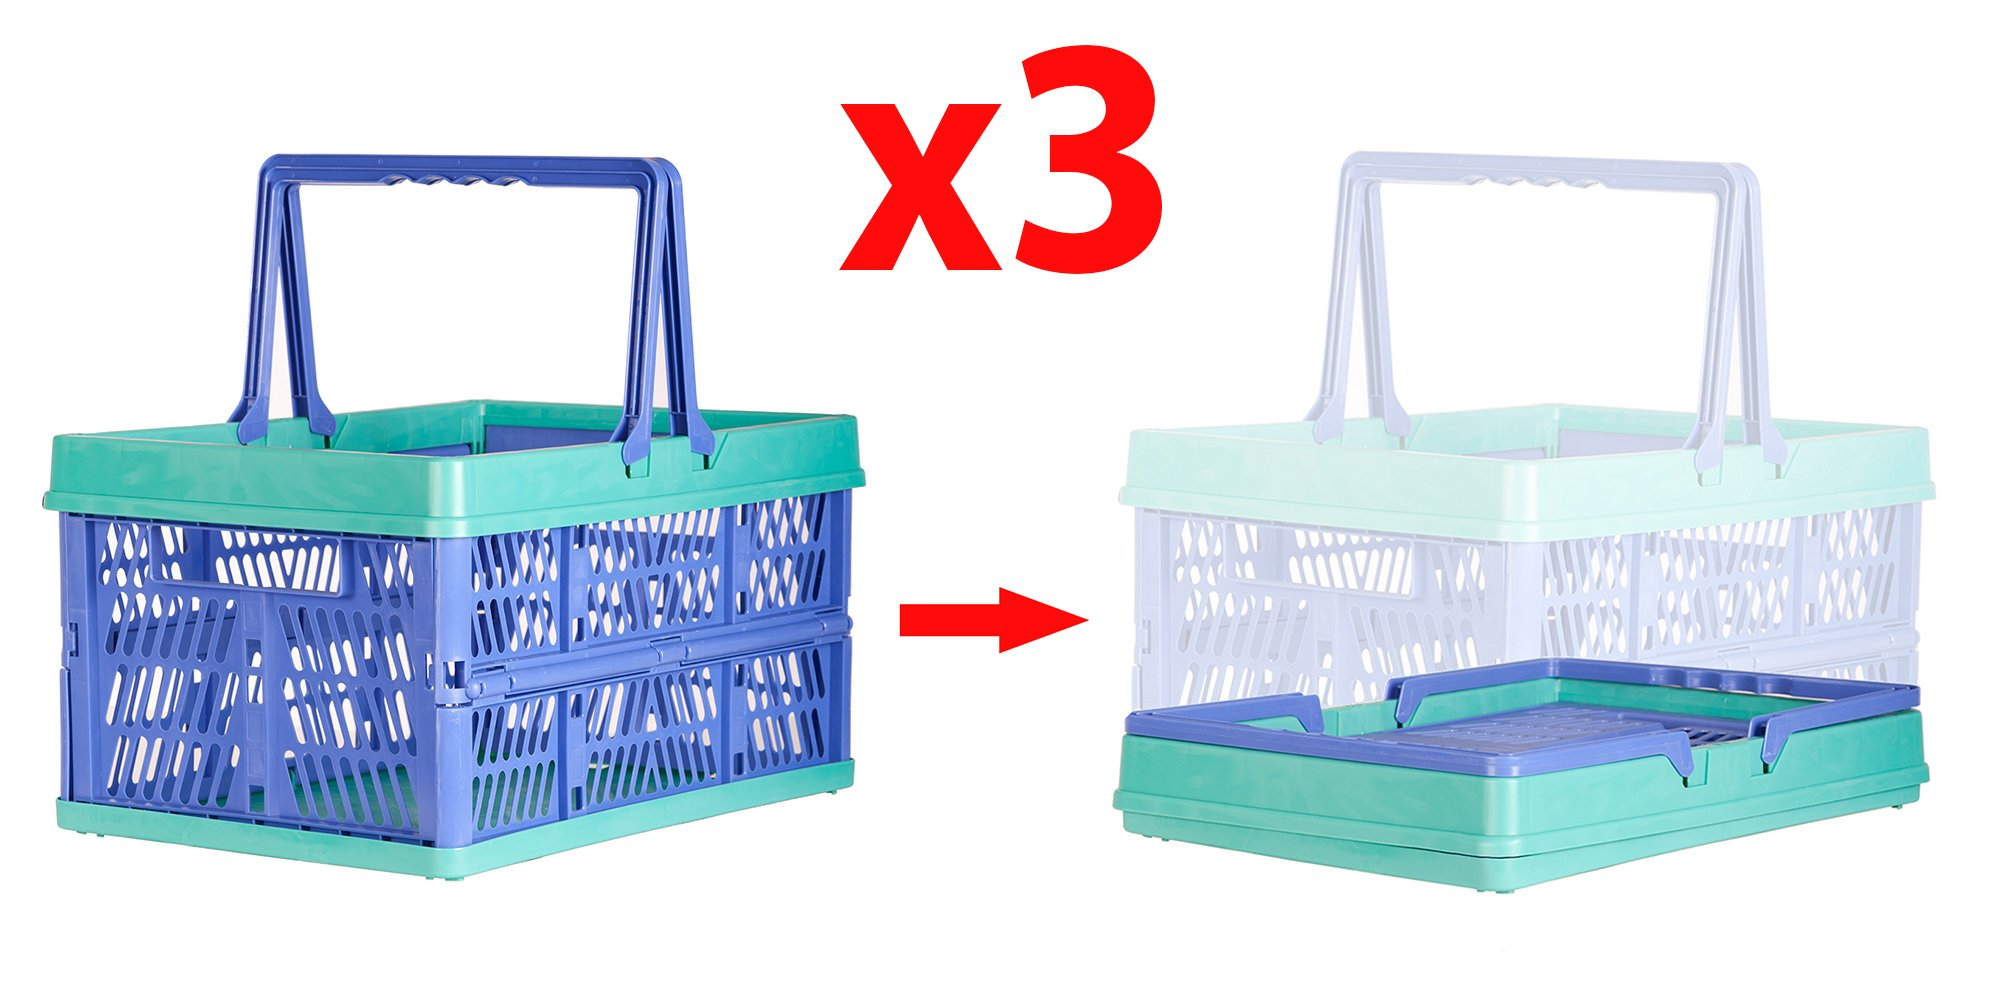 3 Packs Cart-Buddy 31 Liter Collapsible Storage Bin/Container Grated Wall Folding Utility Shopping Carry Basket Tote With Handle